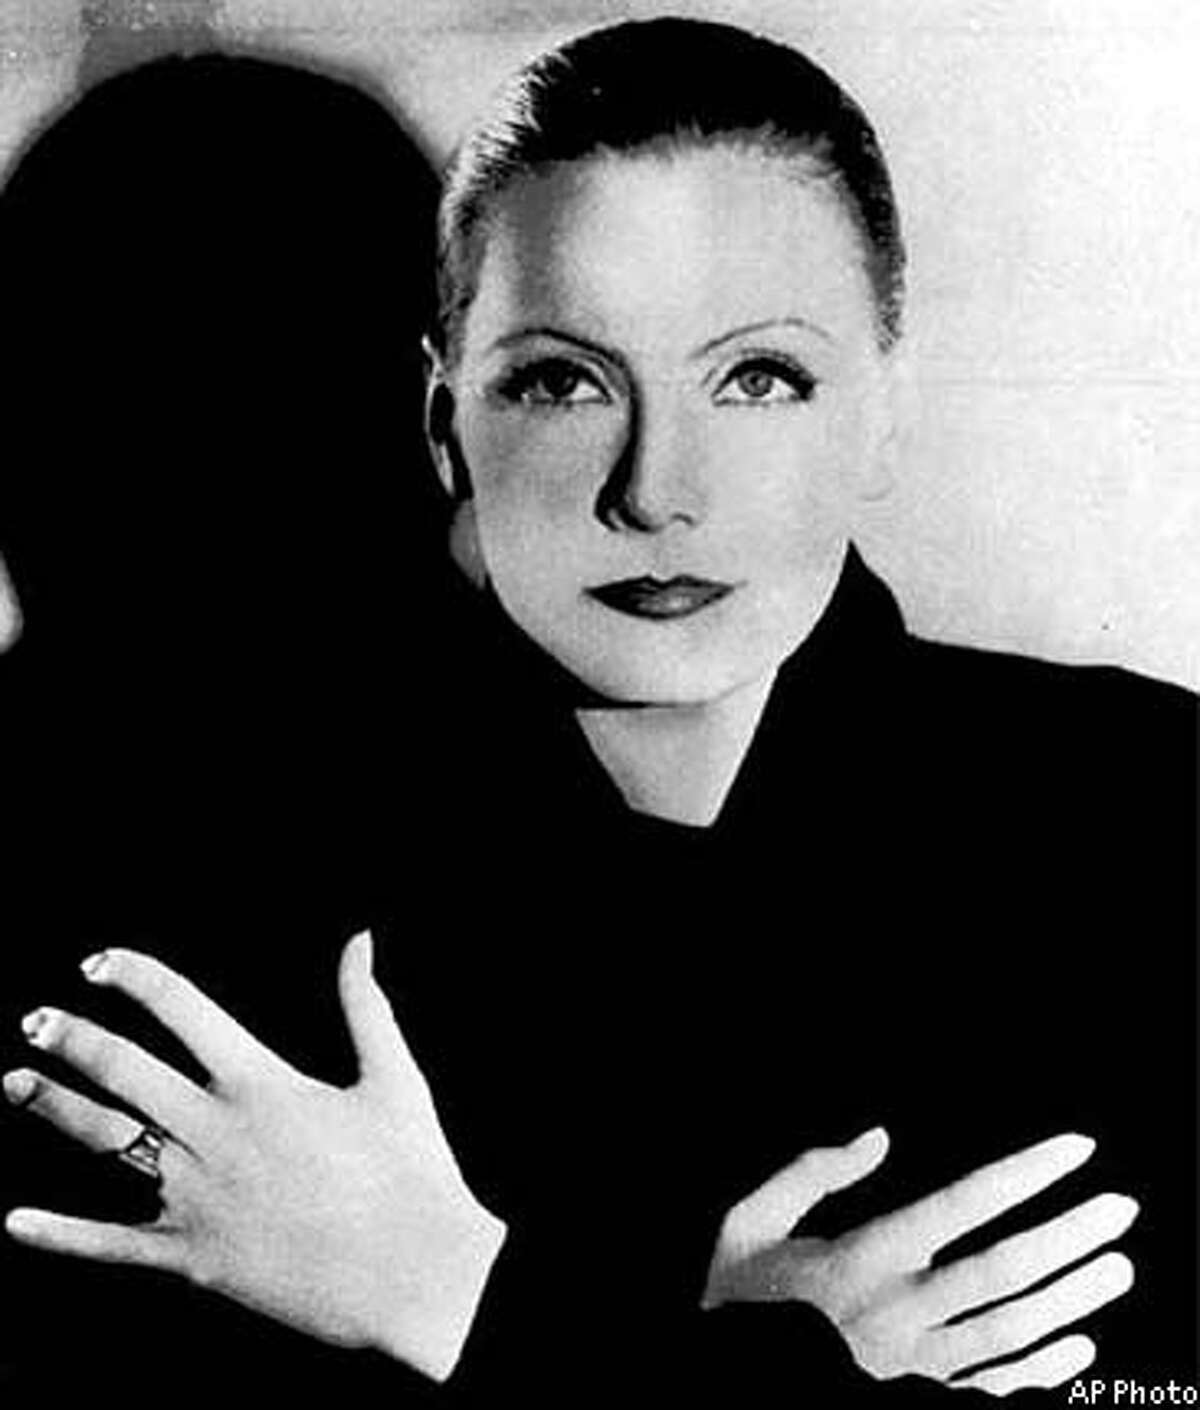 Shown are undated file photo,Greta Garbo. After years of a rumored love affair with Mercedes de Acosta letters from Garbo were displayed Monday, April 17, 2000, after being unsealed for the first time on Saturday, April 15, 2000 at the Rosenbach Museum and Library in Philadelphia. The 113 items that included letters, flower notes, telegrams, photos and poems chronicled a 28-year friendship of ups and downs, but gave no explicit evidence of a lesbian relationship between the two. (AP Photo/Acosta- Rosenbach Museum and Library, ho; Garbo- AP file photo)